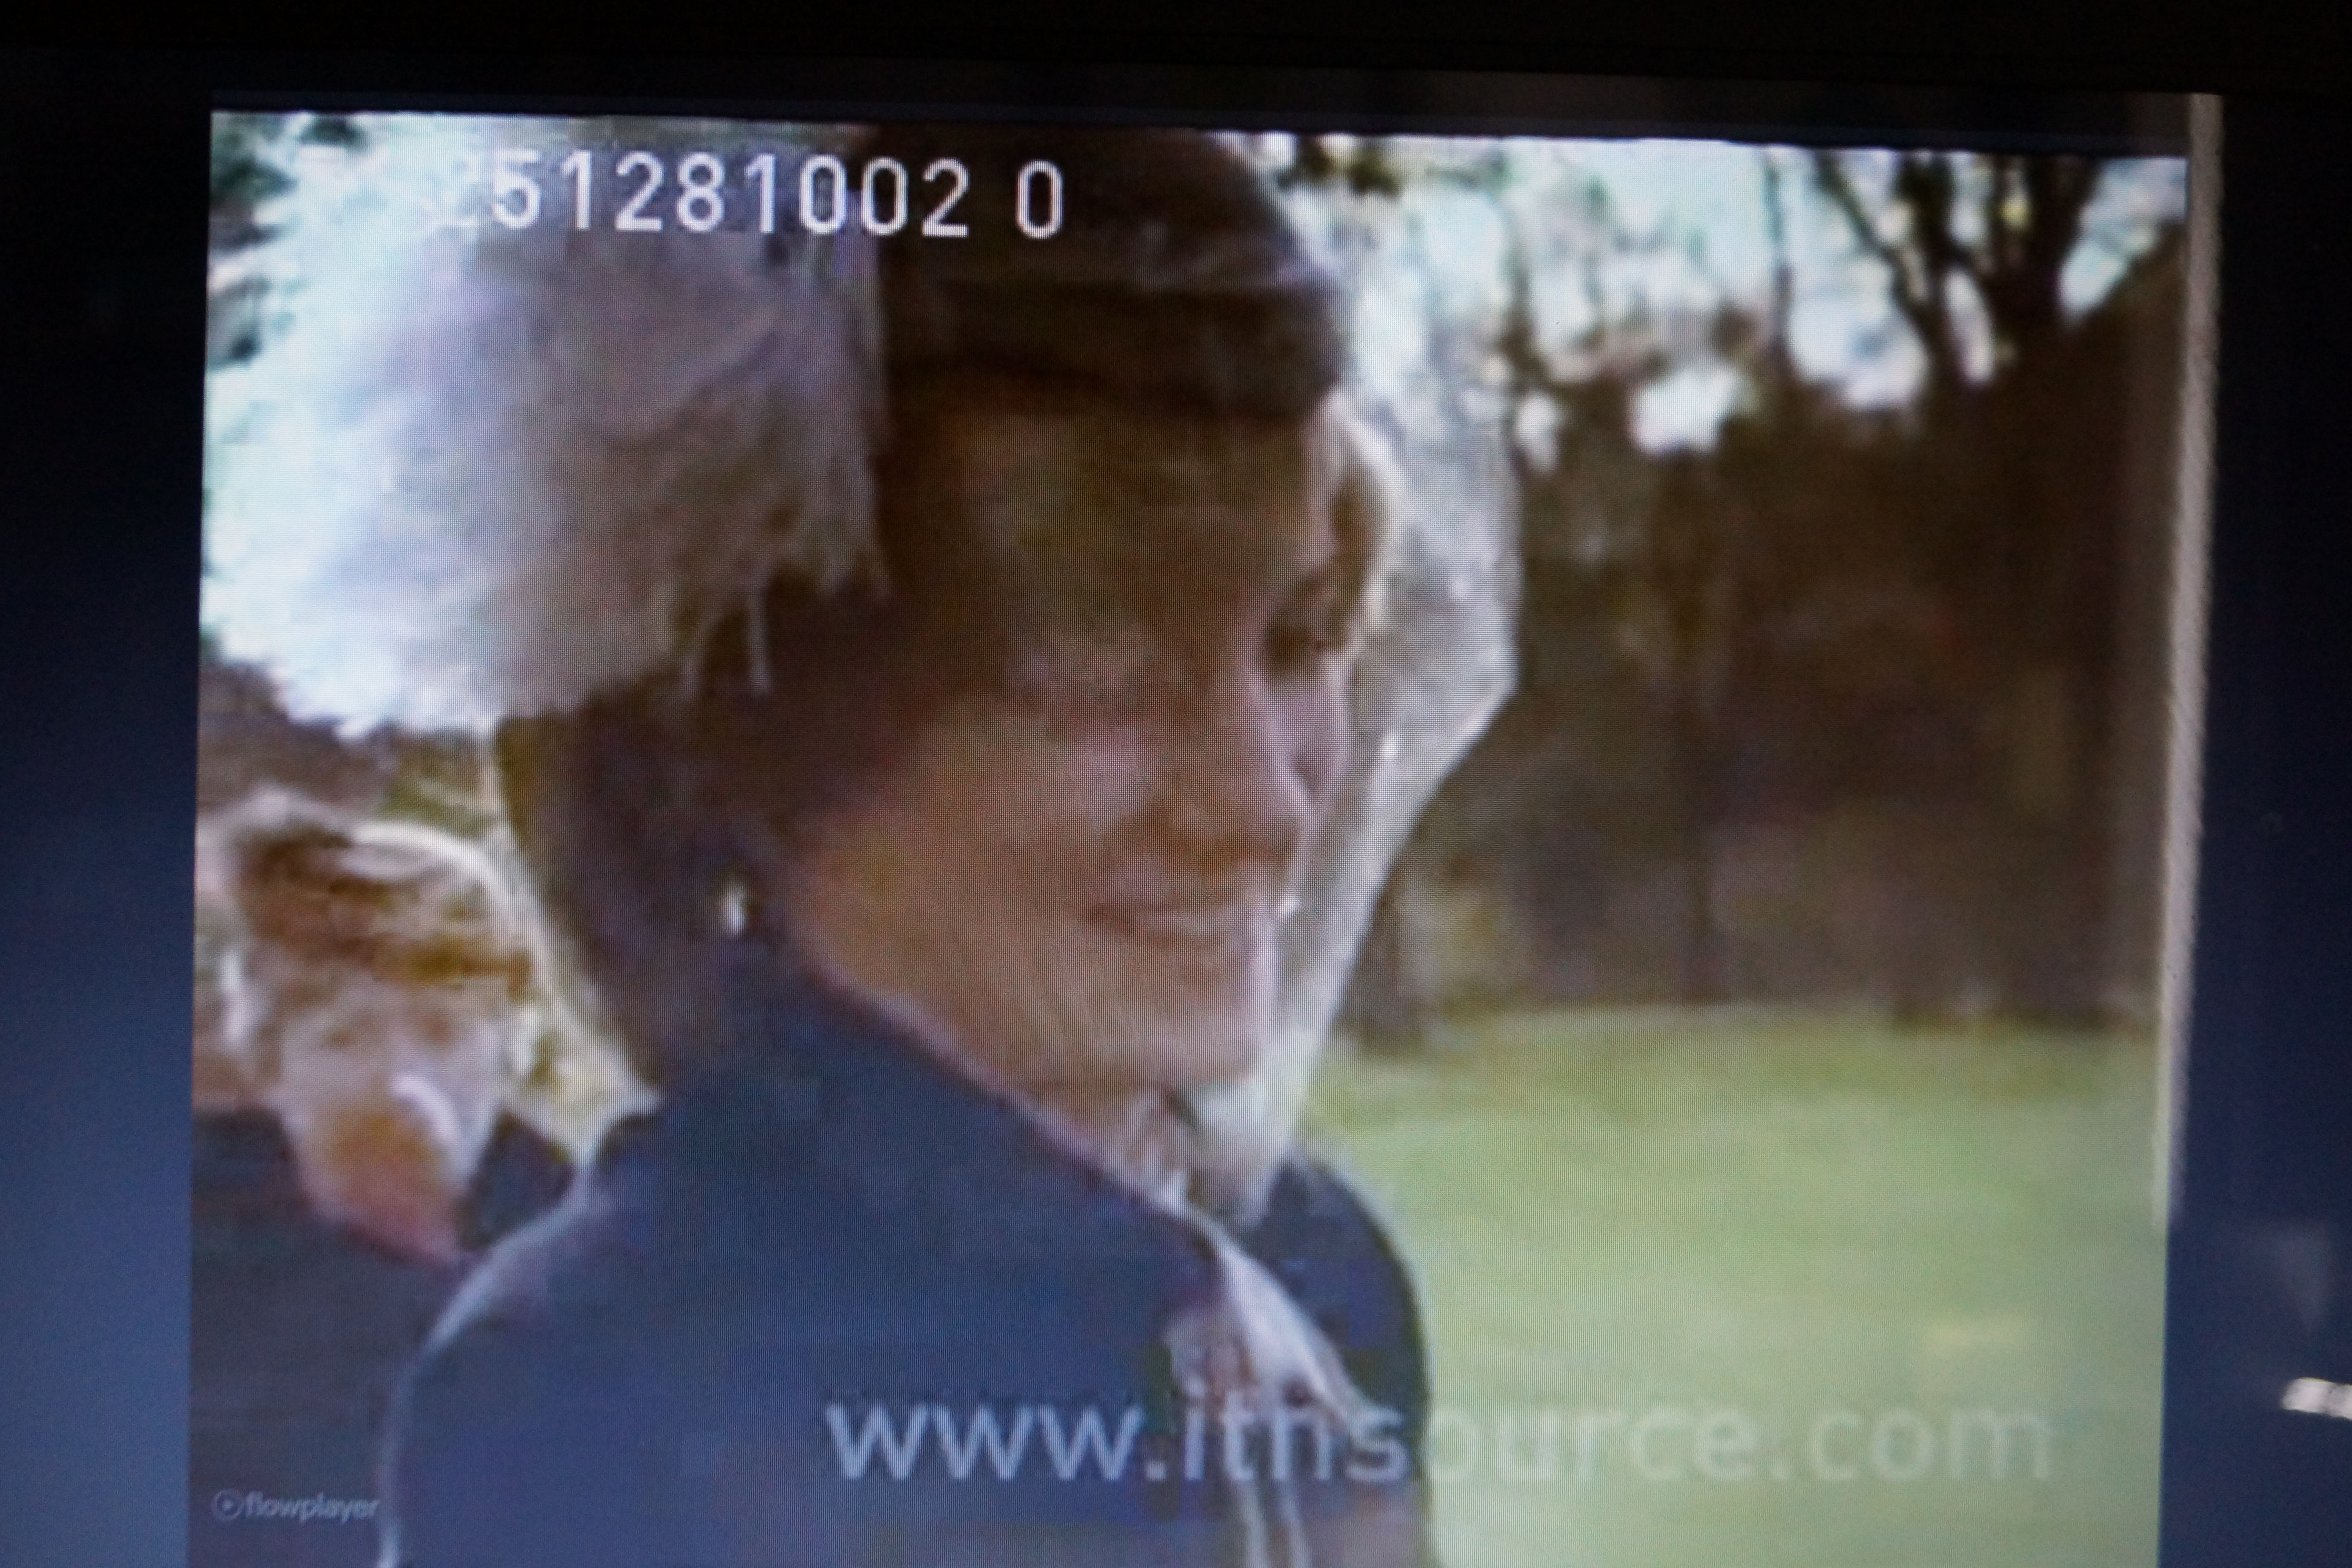 """1981 The Queen explains in her Christmas speech of 1981, that these photos were taken """"before"""" the wedding, in the """"grounds of Buckingham Palace"""" for (a) """"tea (party) for 3 and a half thousand disabled people and their families"""" As the Queen says this is before the wedding and The weather and Charles presence indicate the event took place prior to 29 March 1981 when he left for Australia. The footage appeared on Television on 25 Dec 1981 as part of the Queens Christmas speech."""